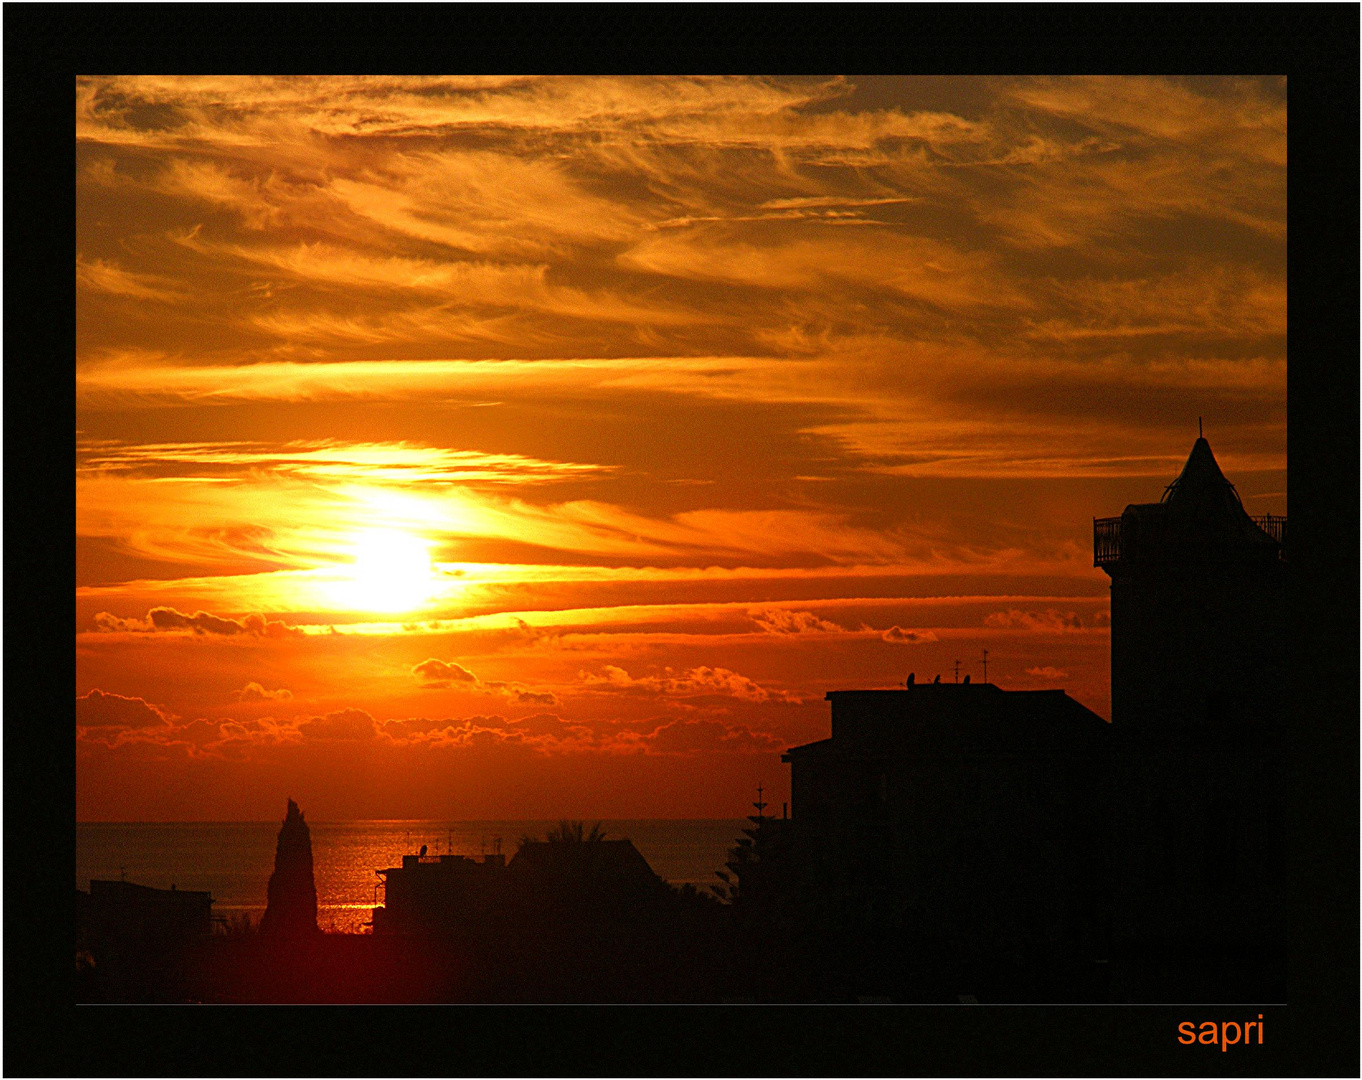 tramonto in controluce